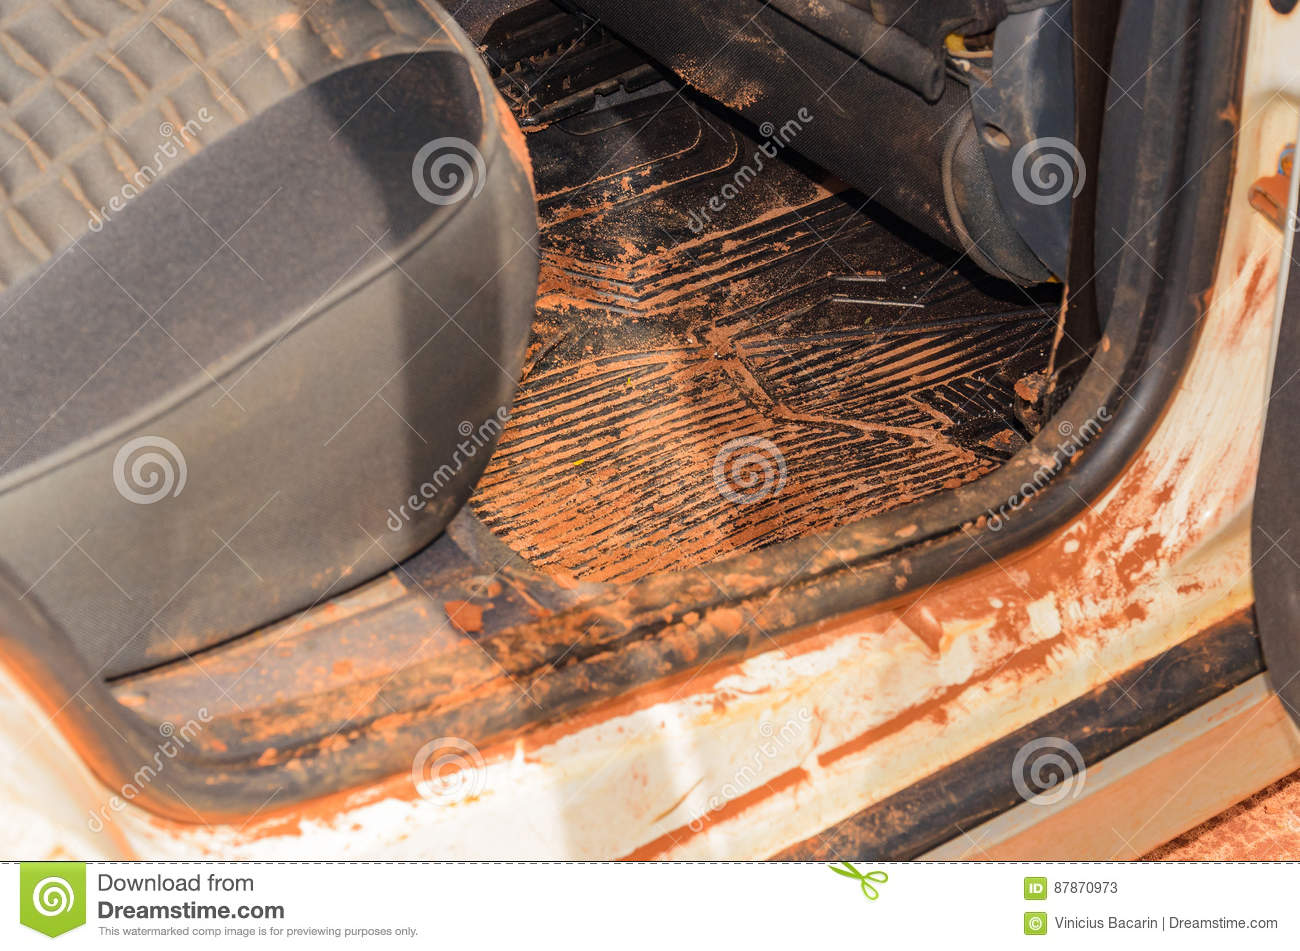 dirty car interior with sand and mud everywhere stock image image of close interior 87870973. Black Bedroom Furniture Sets. Home Design Ideas